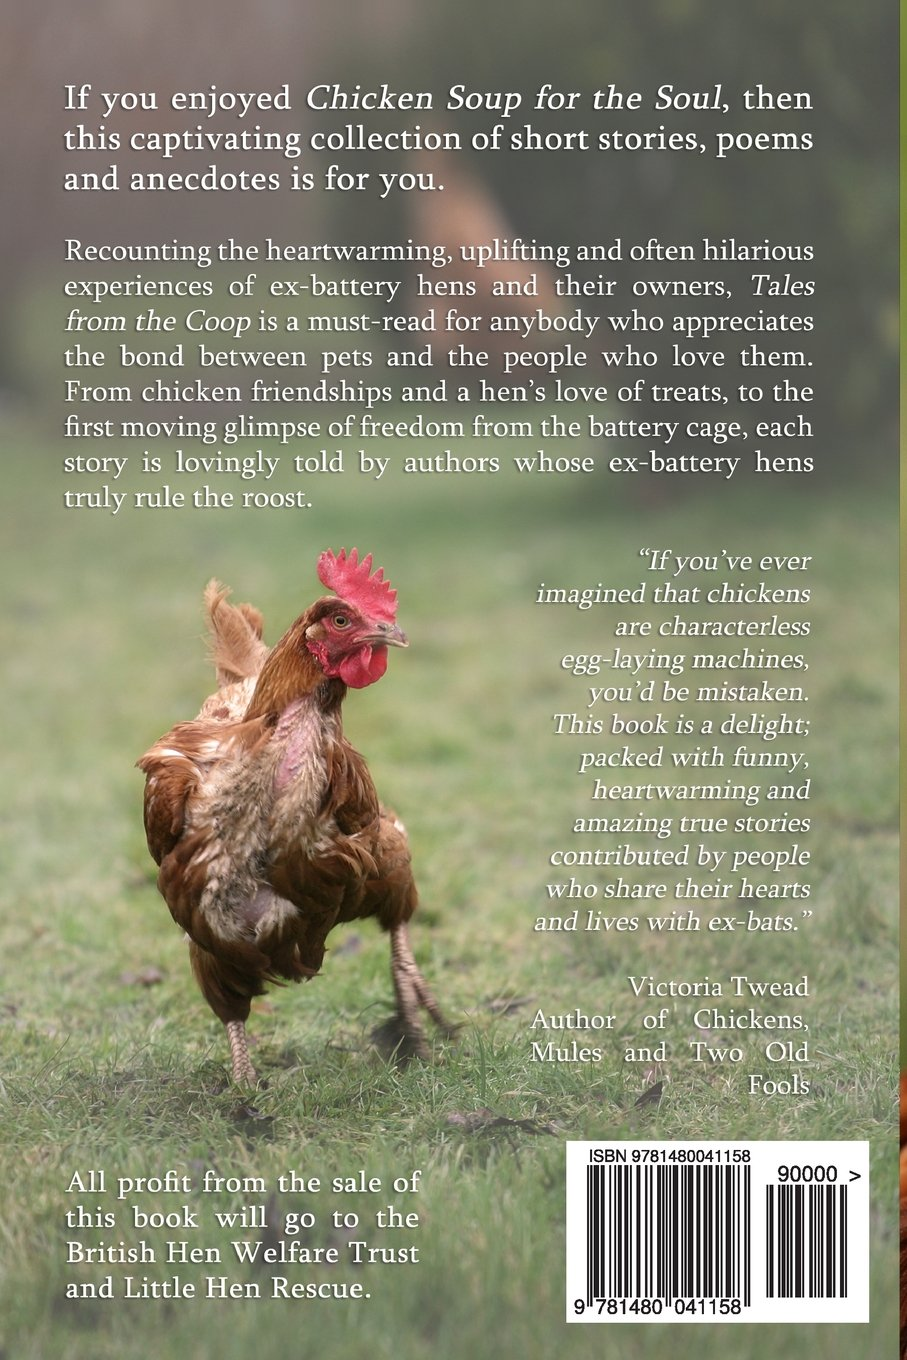 Tales from the Coop: The joy of ex-battery hens: Sophie Mccoy:  9781480041158: Amazon.com: Books